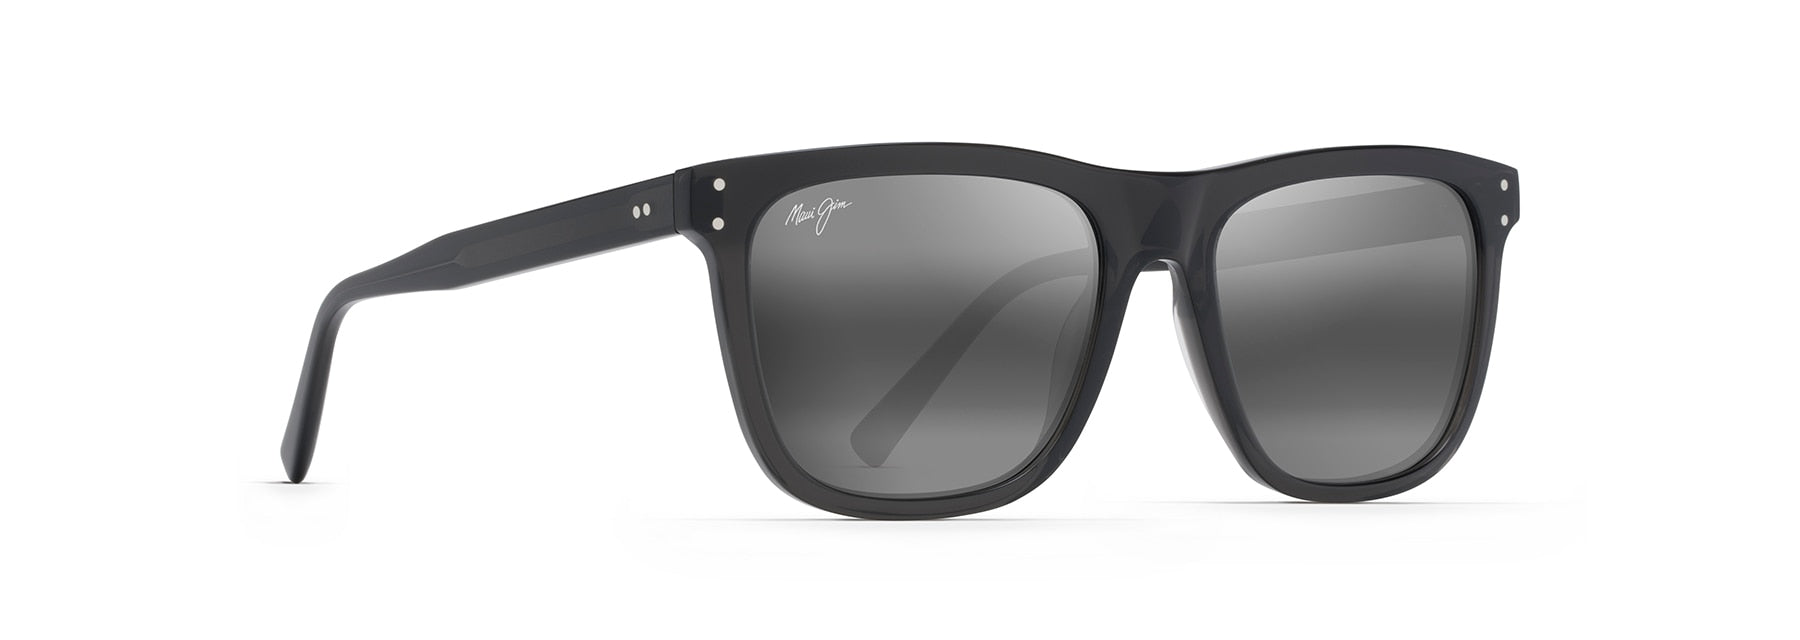 MAUI JIM 802-14G GREY VELZYLAND DARK TRANS GREY